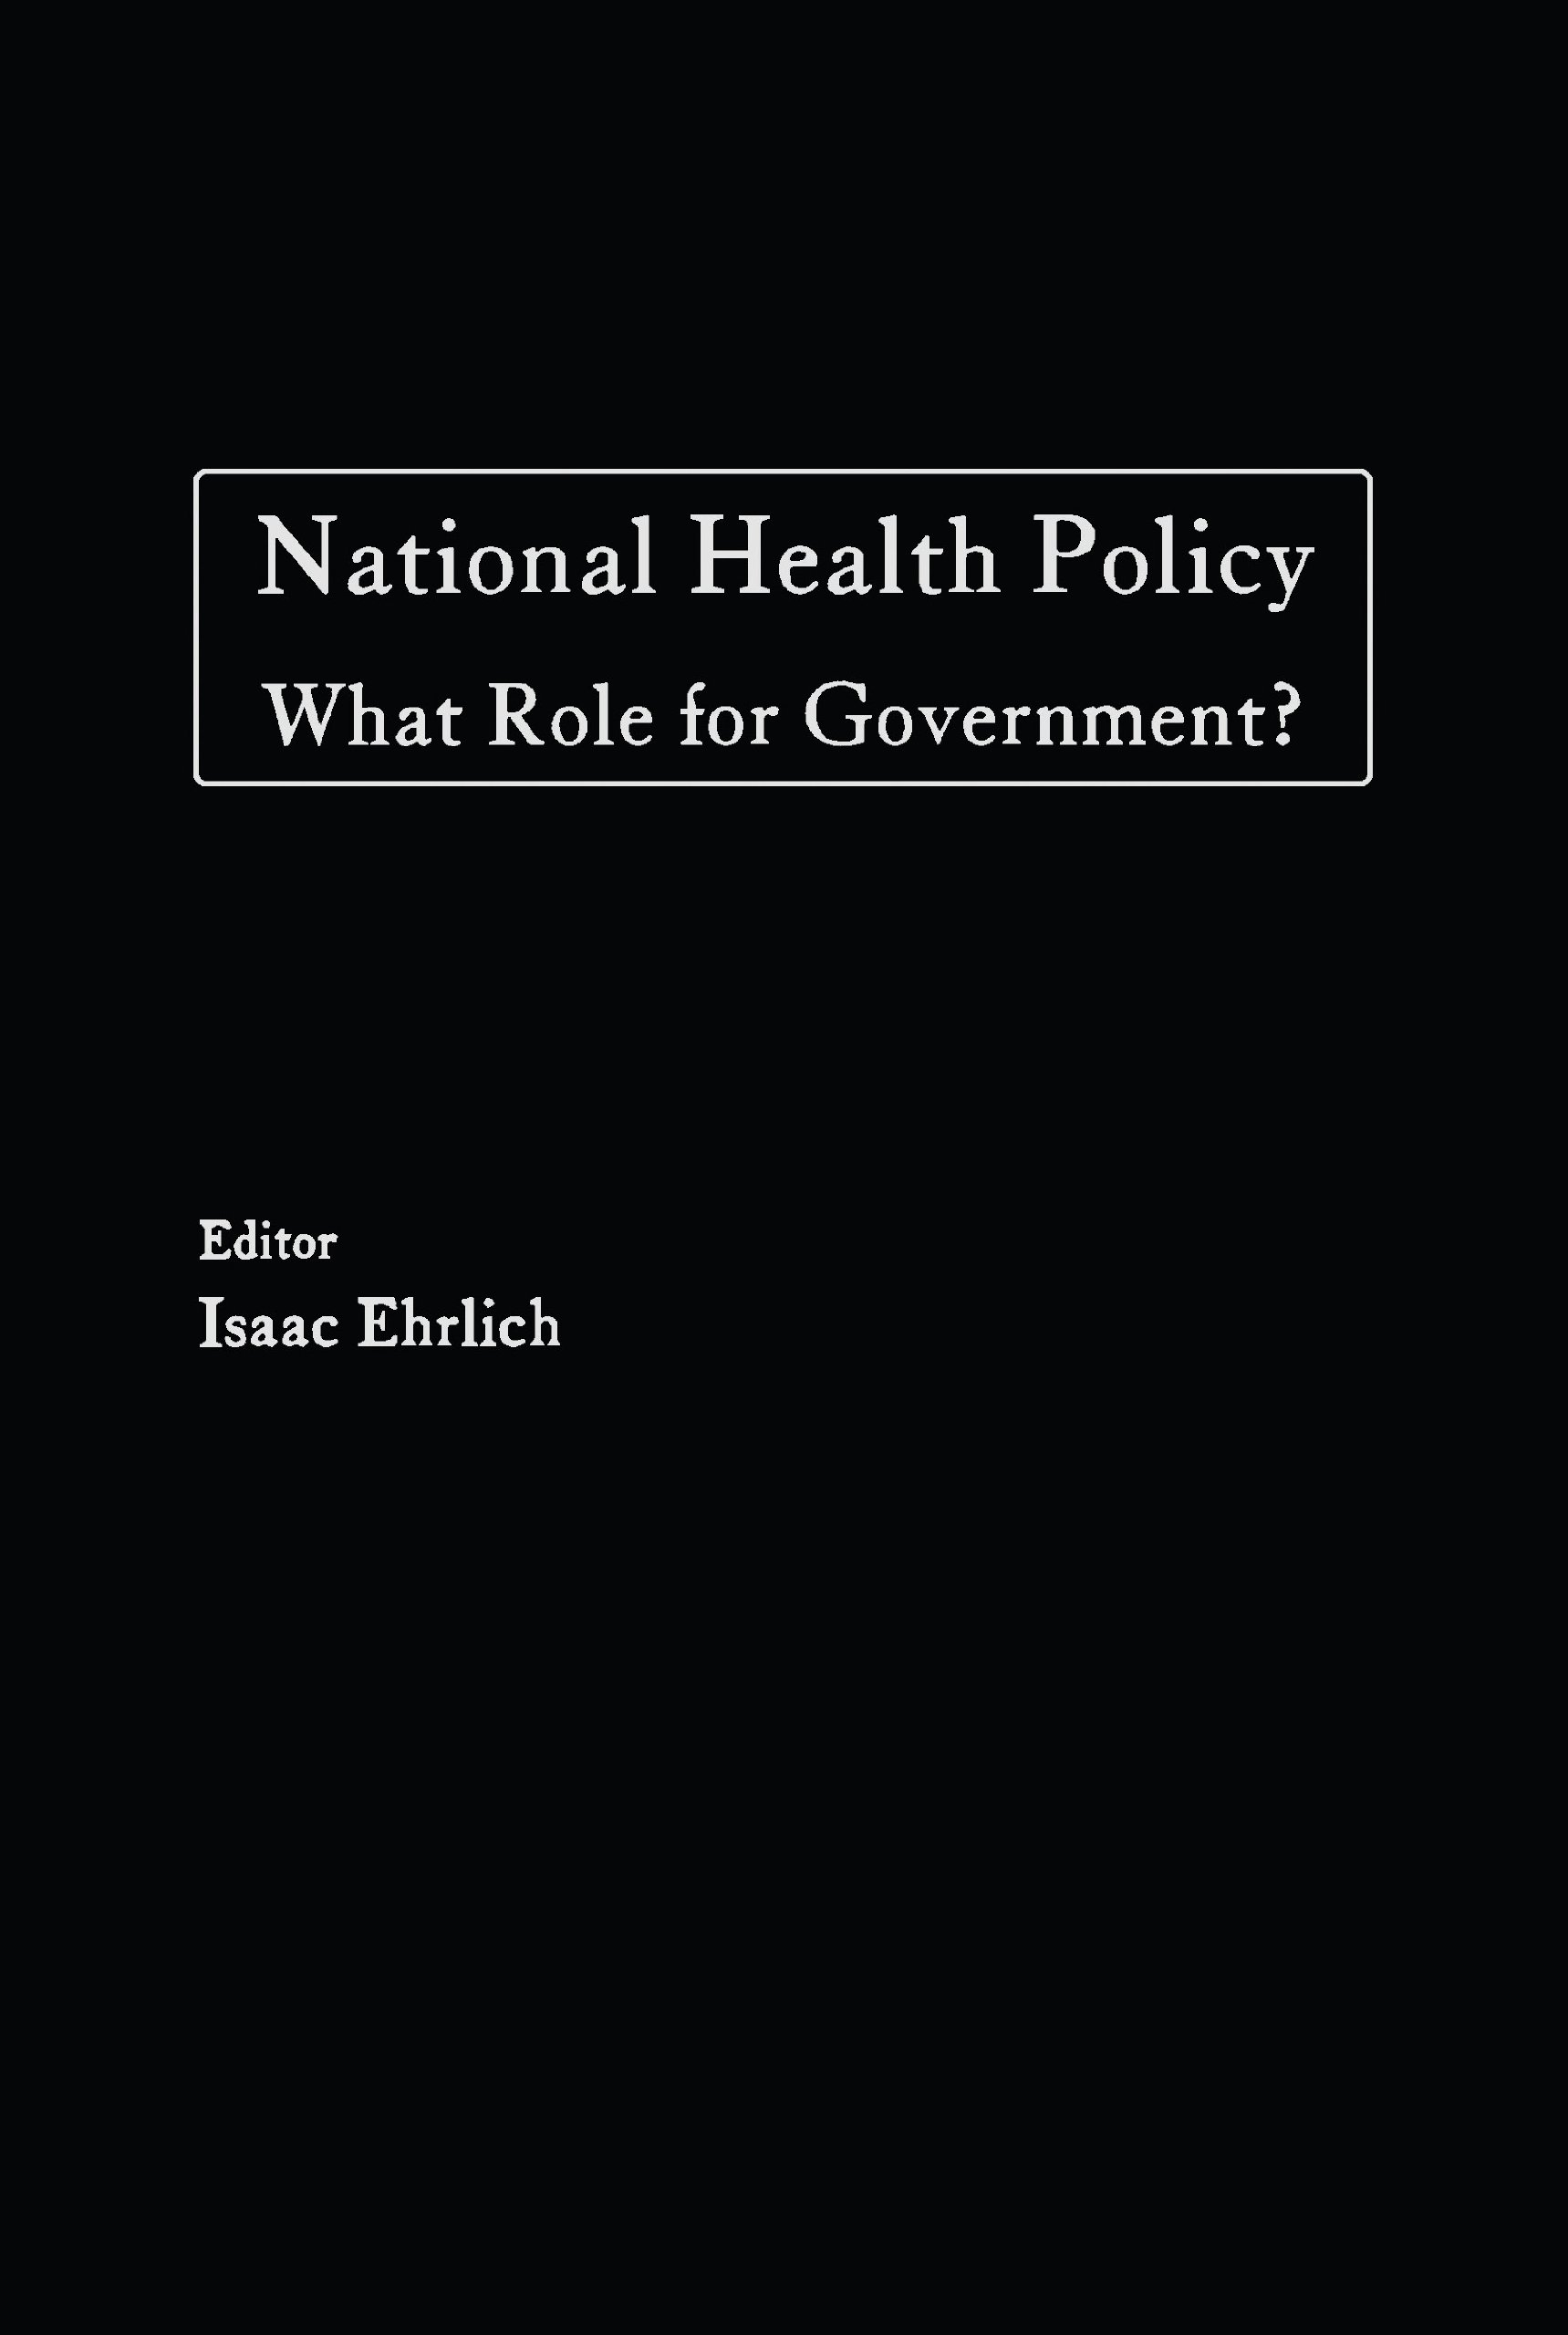 National Health Policy: What Role for Government? (Hoover Press publication ;) (English Edition)